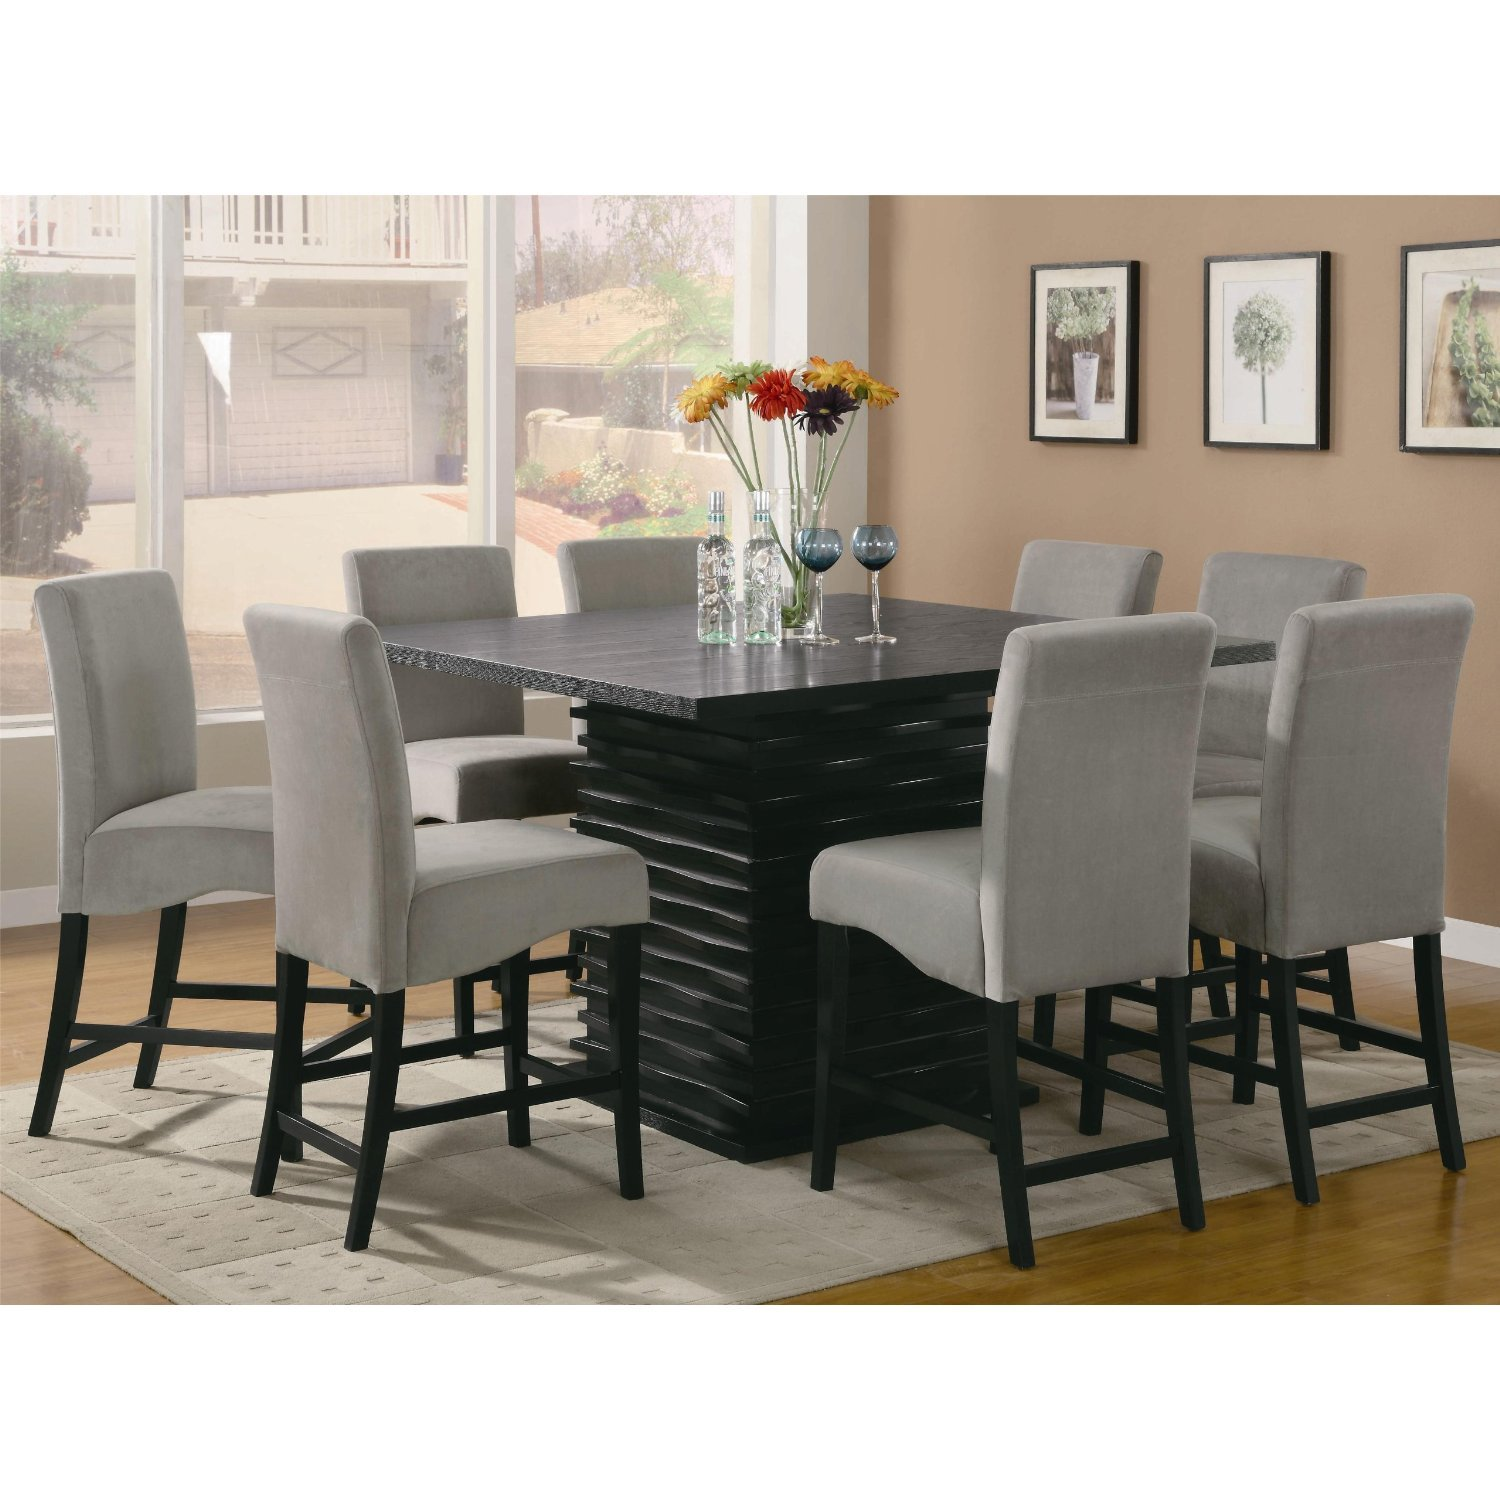 most gallery sets grey from dining gray chairs with rectangular table extendable chadoni